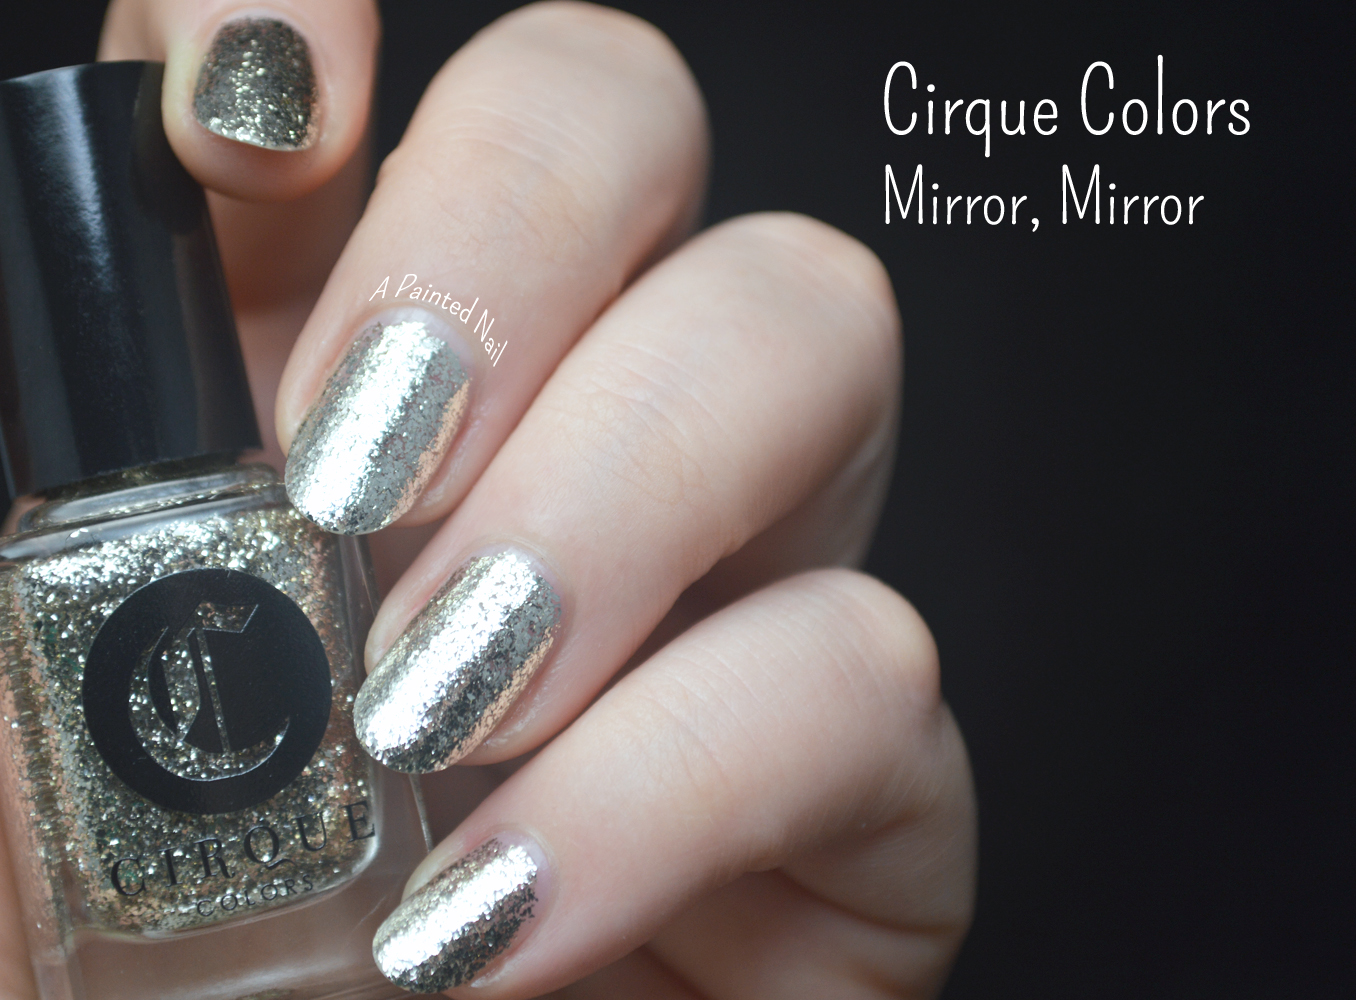 A Painted Nail: Cirque Colors Mirror, Mirror